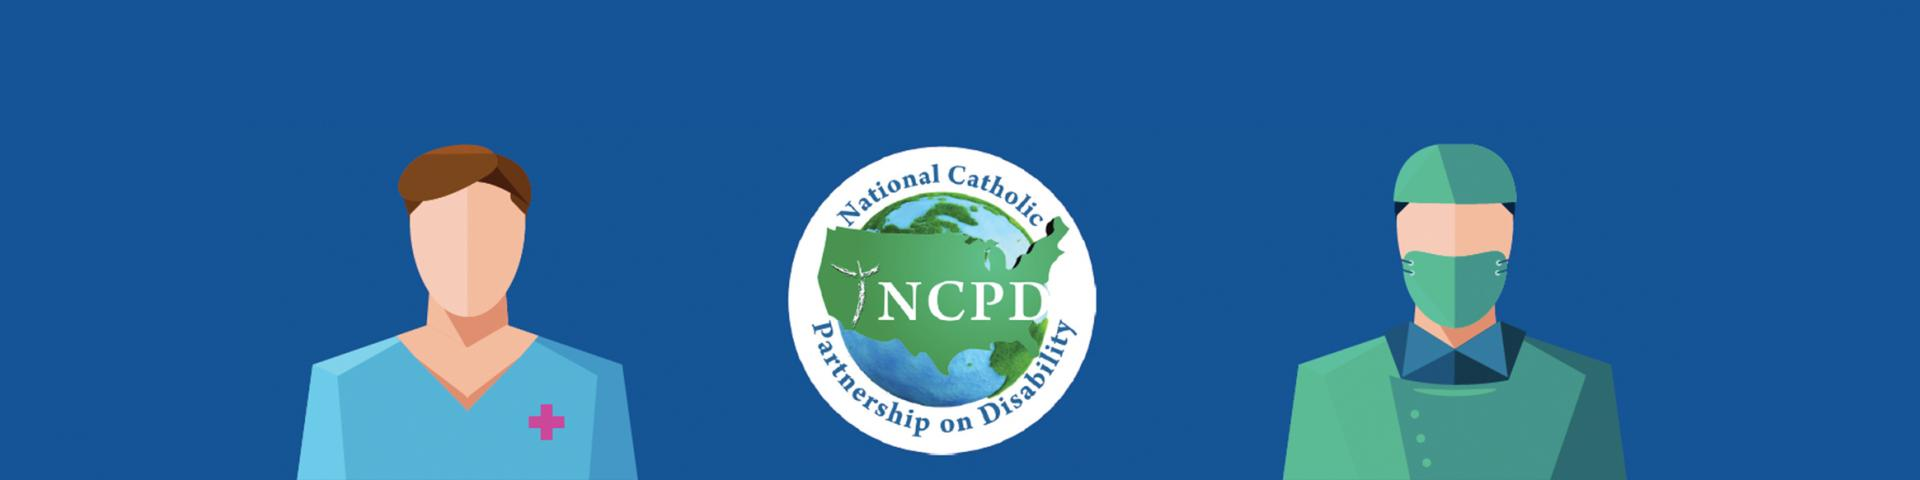 NCPD logo and two healthcare workers